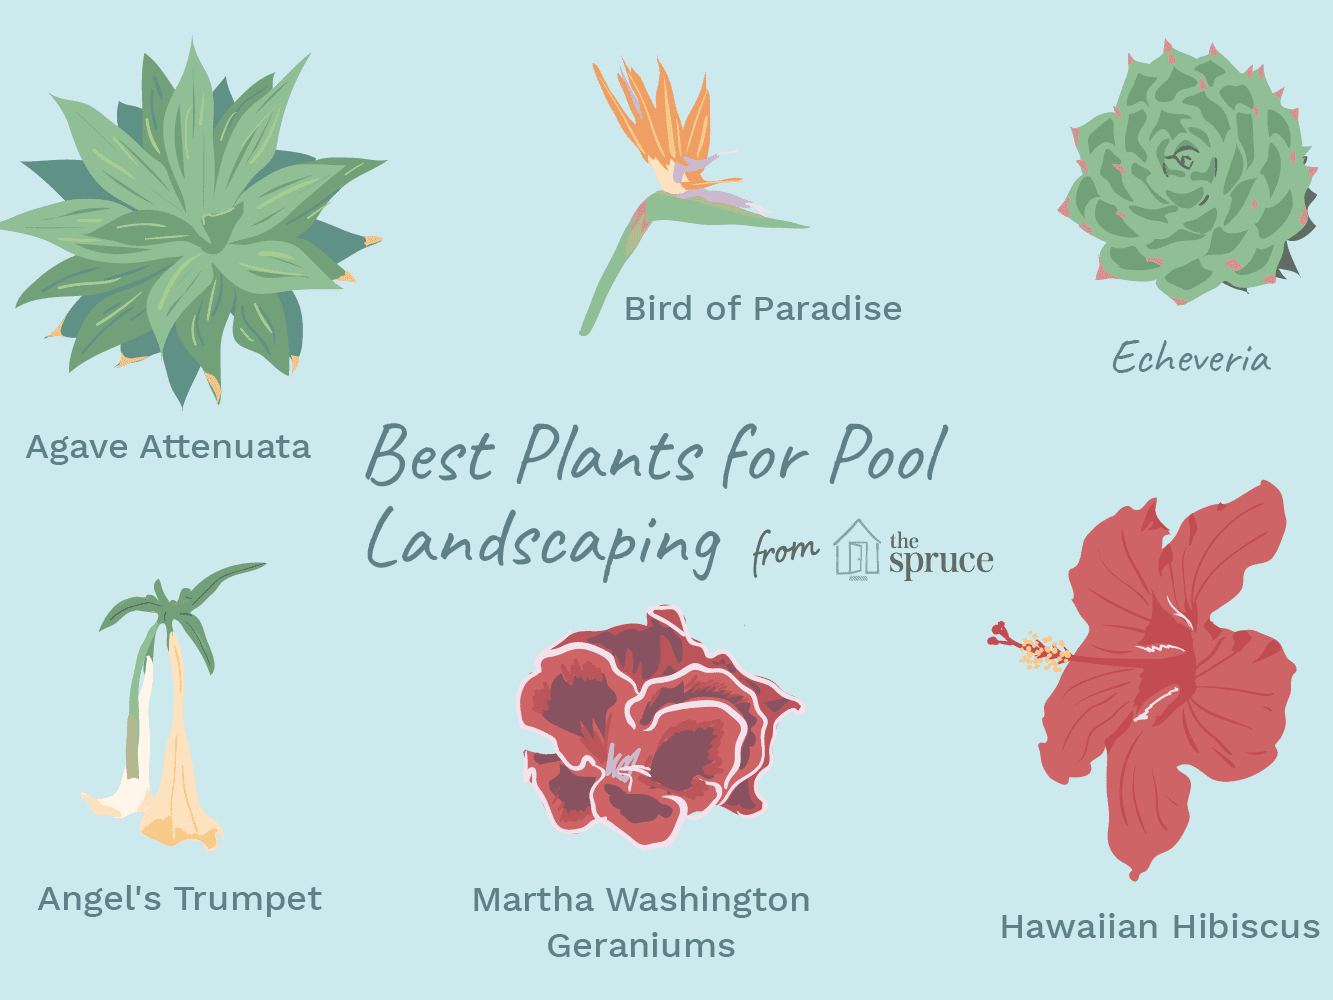 The Best Plants for Poolside Gardens